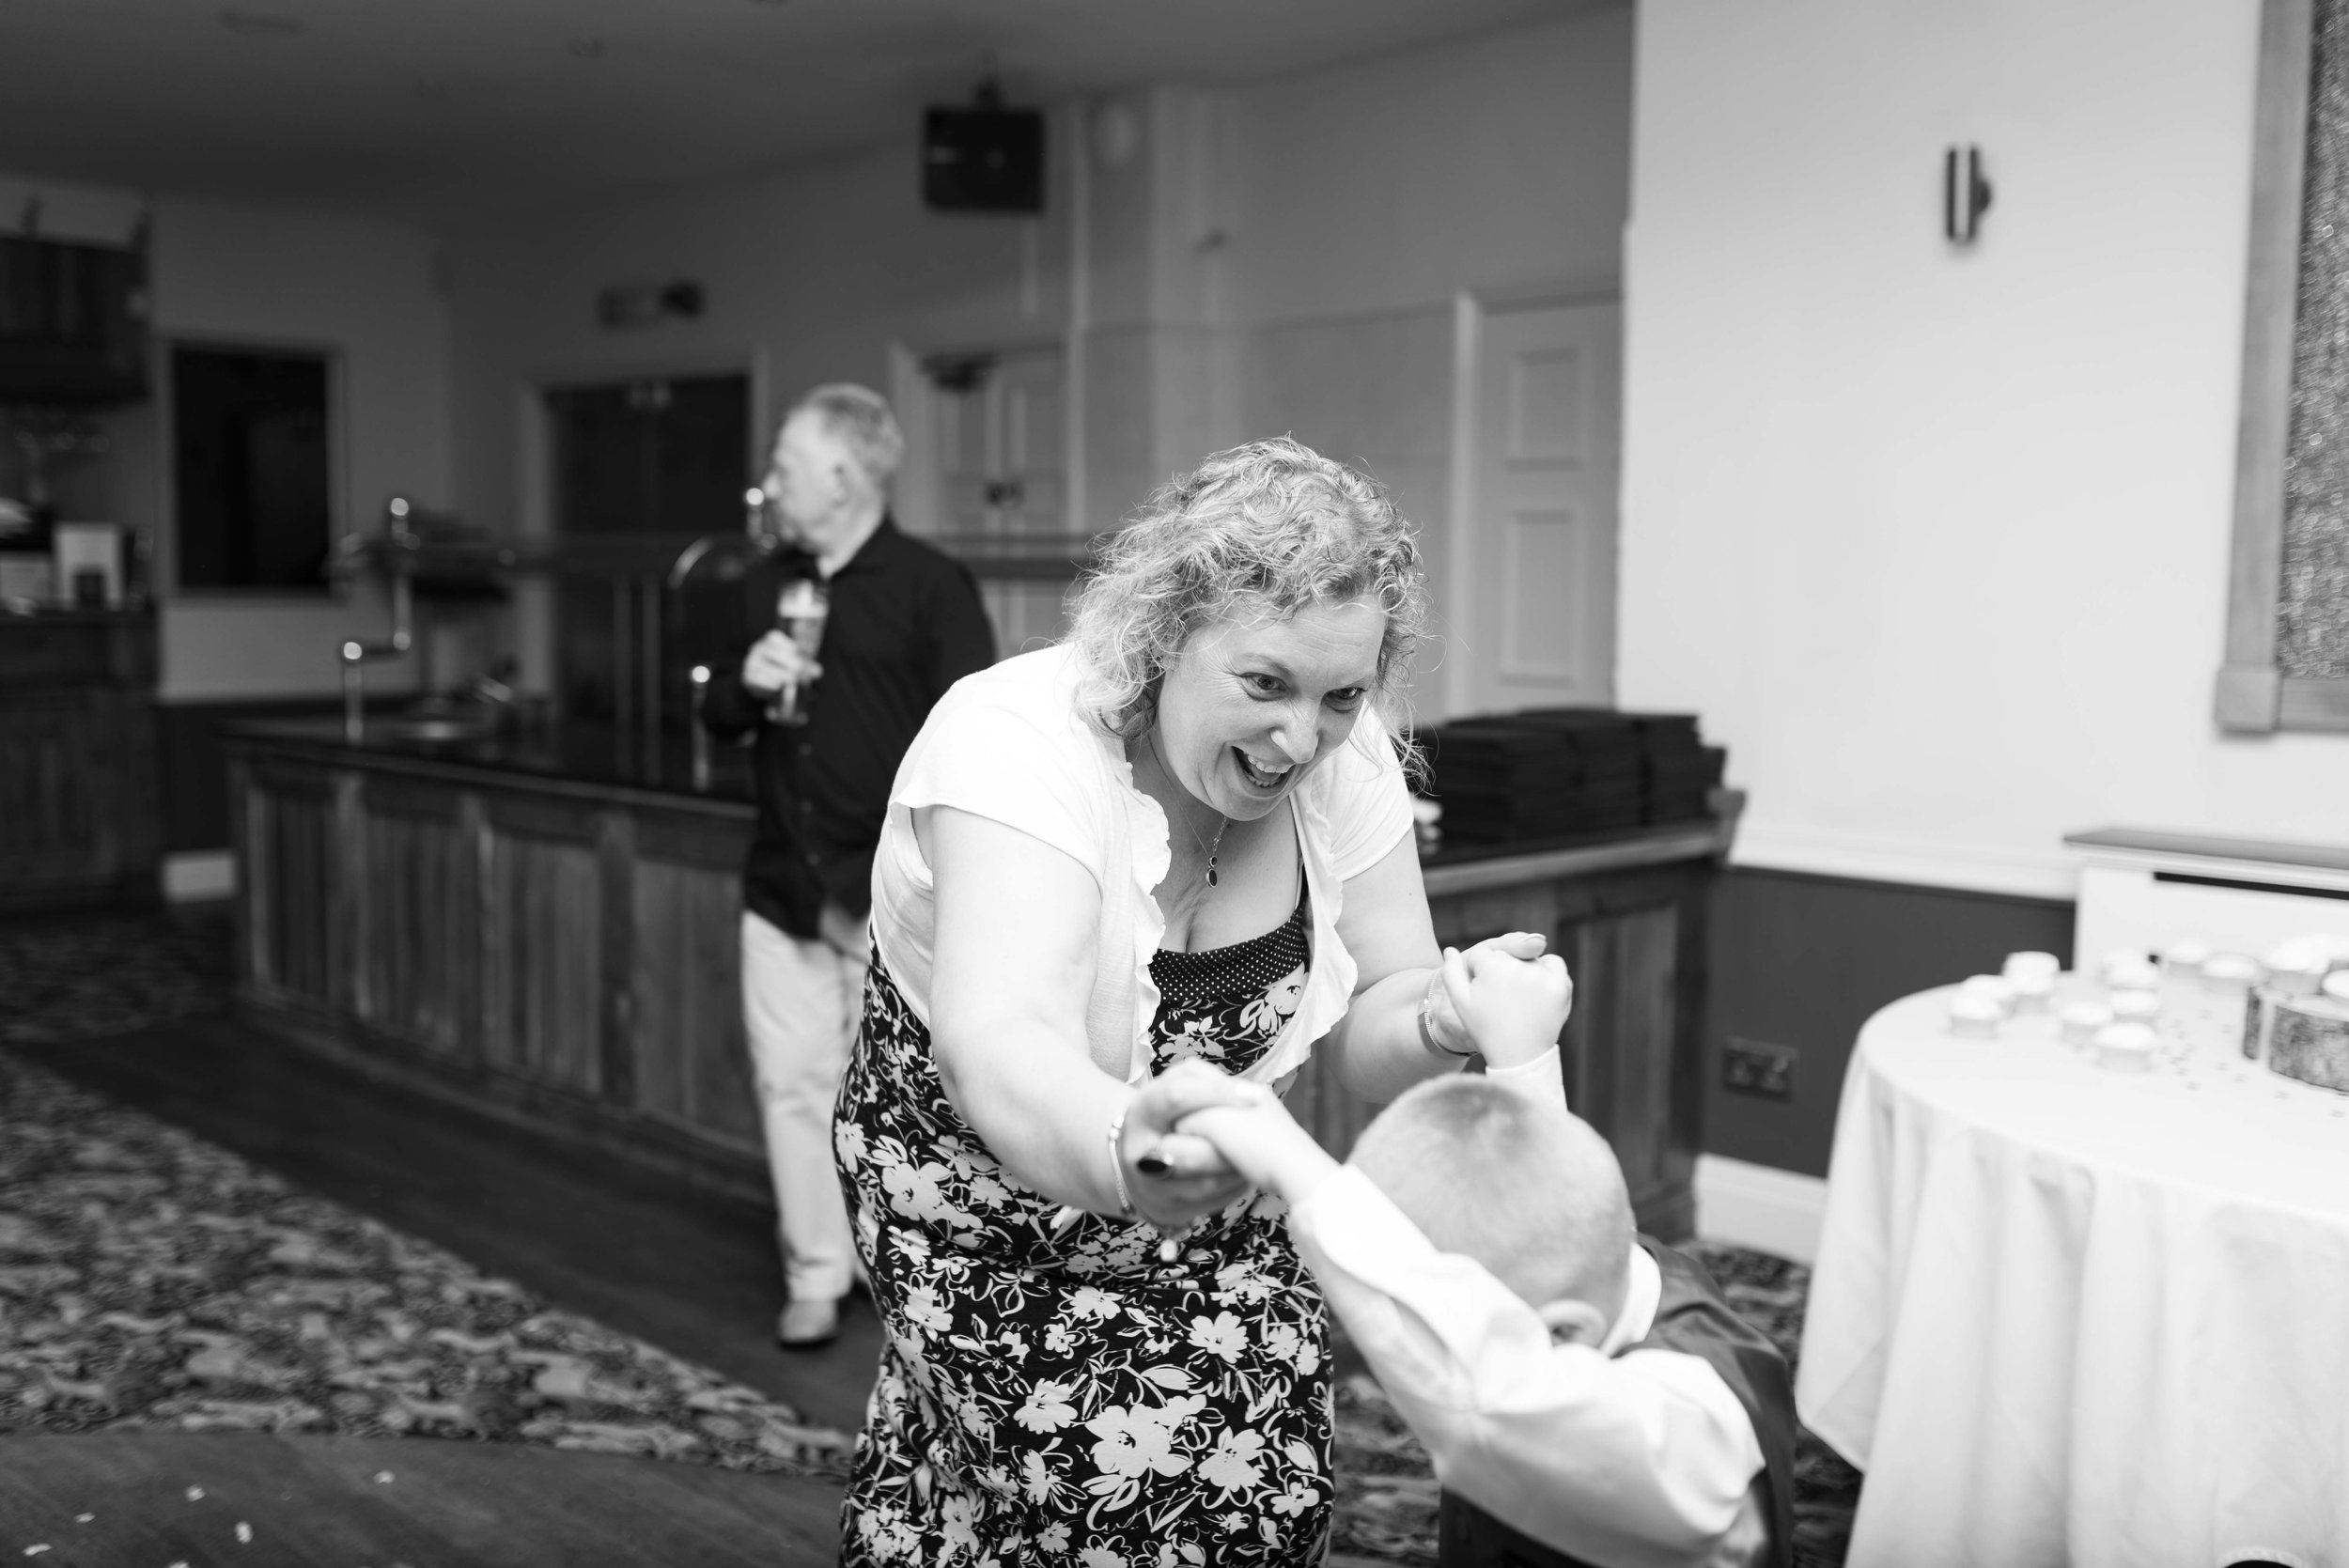 LEA-COOPER-PHOTOGRAPHY-WEDDING-PHOTOGRAPHY-THOMAS-ROBINSON-BUILDING-STOURBRIDGE-YE-OLDE-PUNCHBOWL-INN-BRIDGNORTH-WOLVERHAMPTON-WILLENHALL-UK-WEDDING-PHOTOGRAPHER-7.JPG